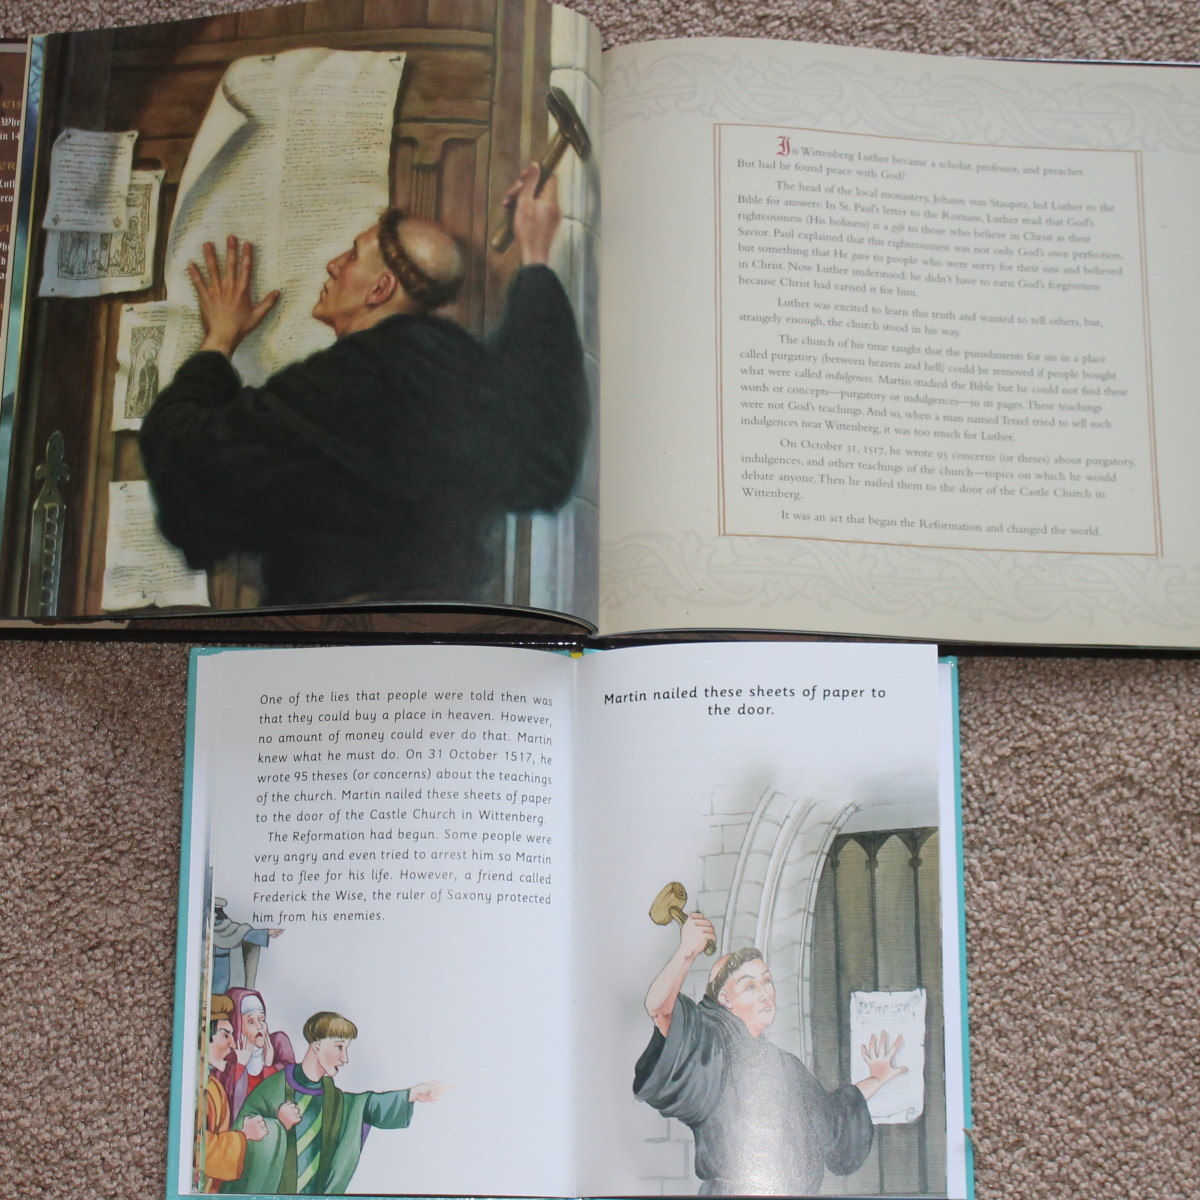 Comparing the text amount and illustrations between the two picture books on Martin Luther